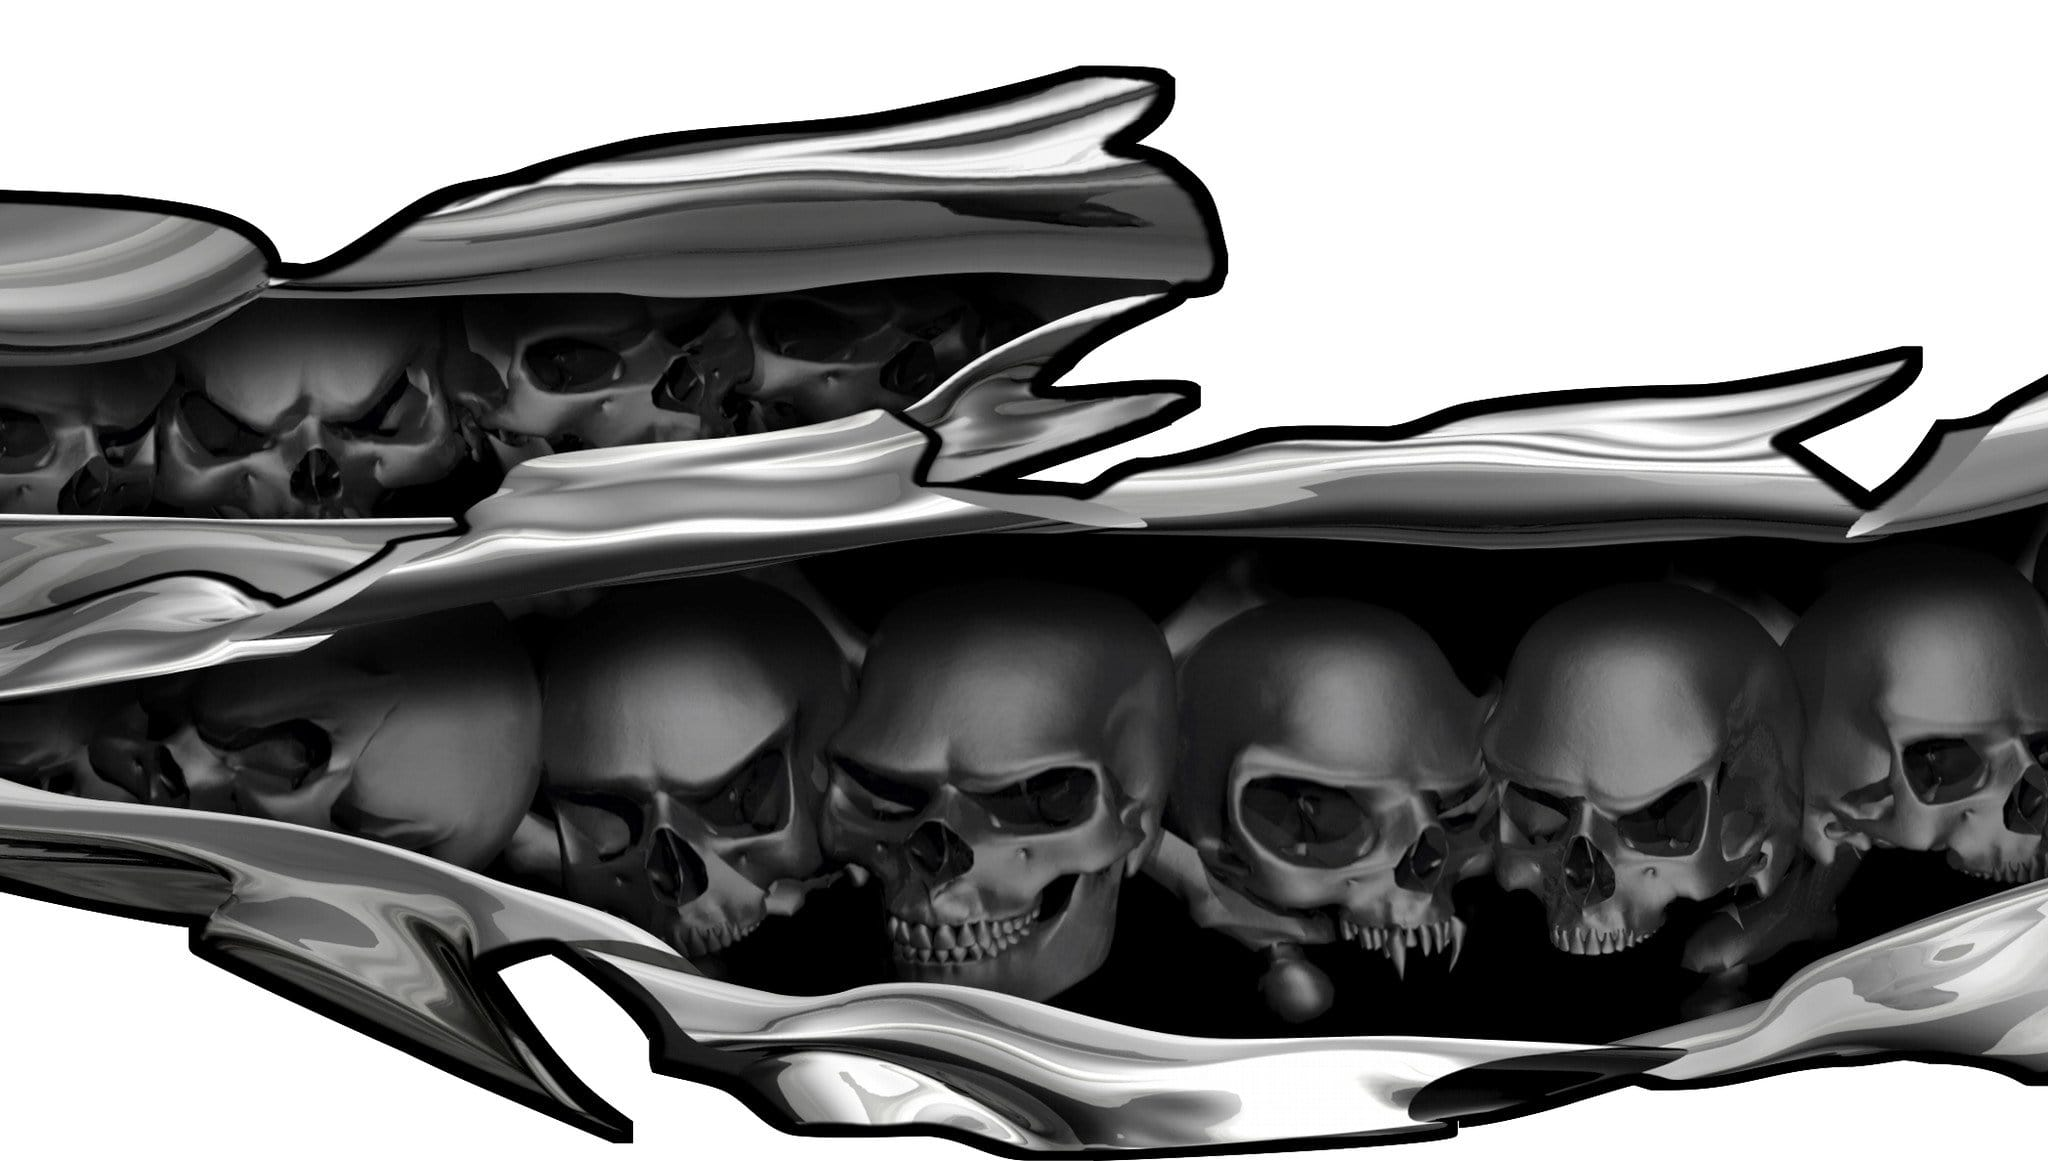 Skullsrippsdecaljpgv - Auto graphic stickers